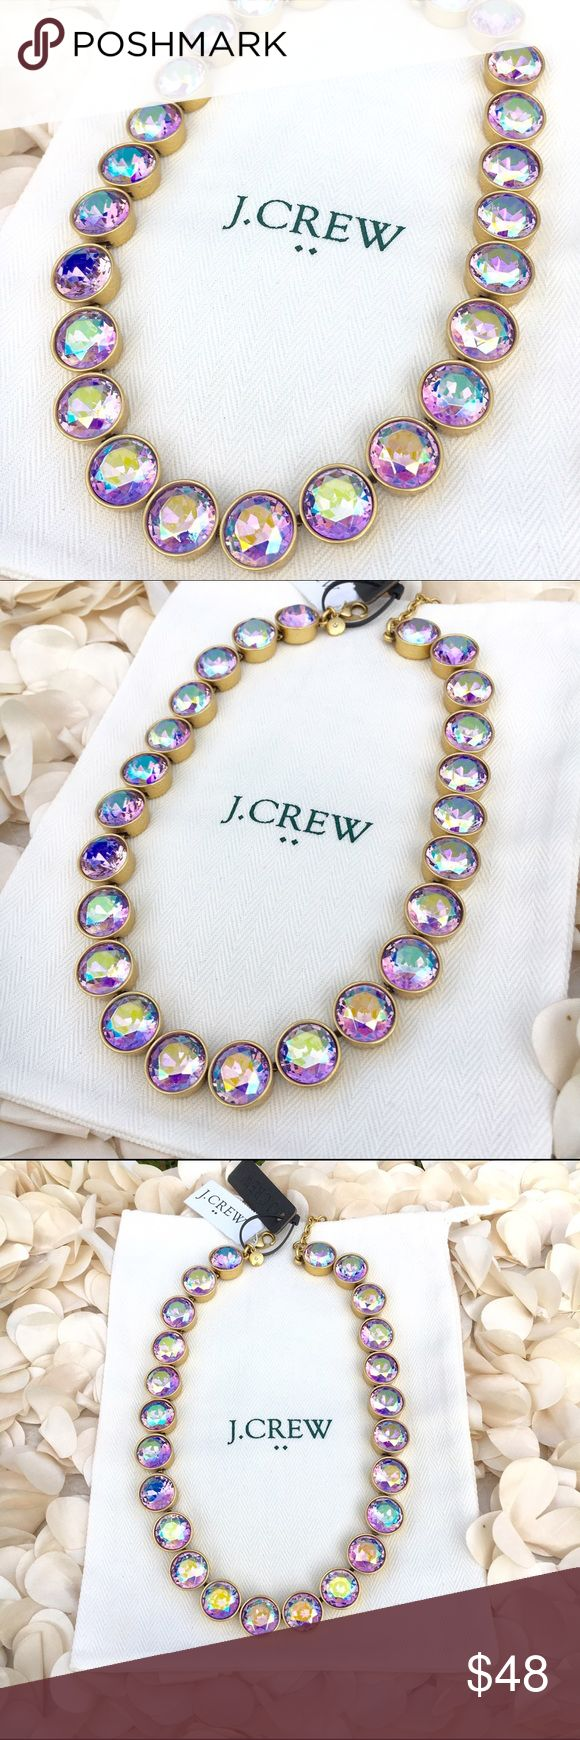 "J. Crew Crystal Dot Pink Irides Statement Necklace NWT - J. Crew Crystal Dots purple/pink Iridescent Statement Necklace -Glass and epoxy stones - Light gold ox plating - Length: 16"" with a 3"" extender chain for adjustable length - jewelry gift box and monogrammed J.Crew white drawstring dust storage bag included with purchase - reasonable offers welcomed J. Crew Jewelry Necklaces"